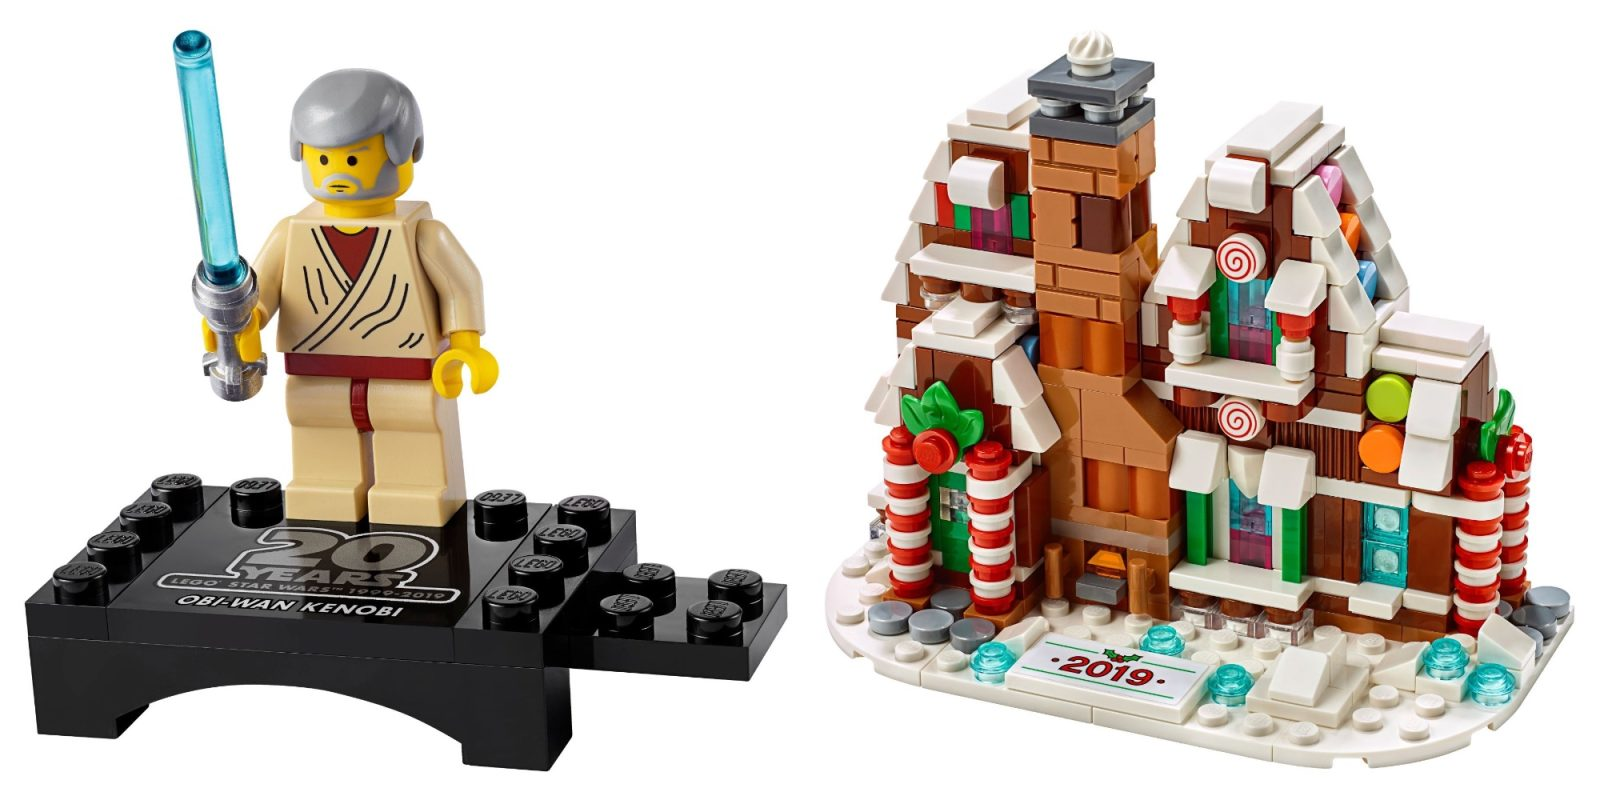 How to score LEGO's new Obi-Wan minifig and gingerbread house for FREE